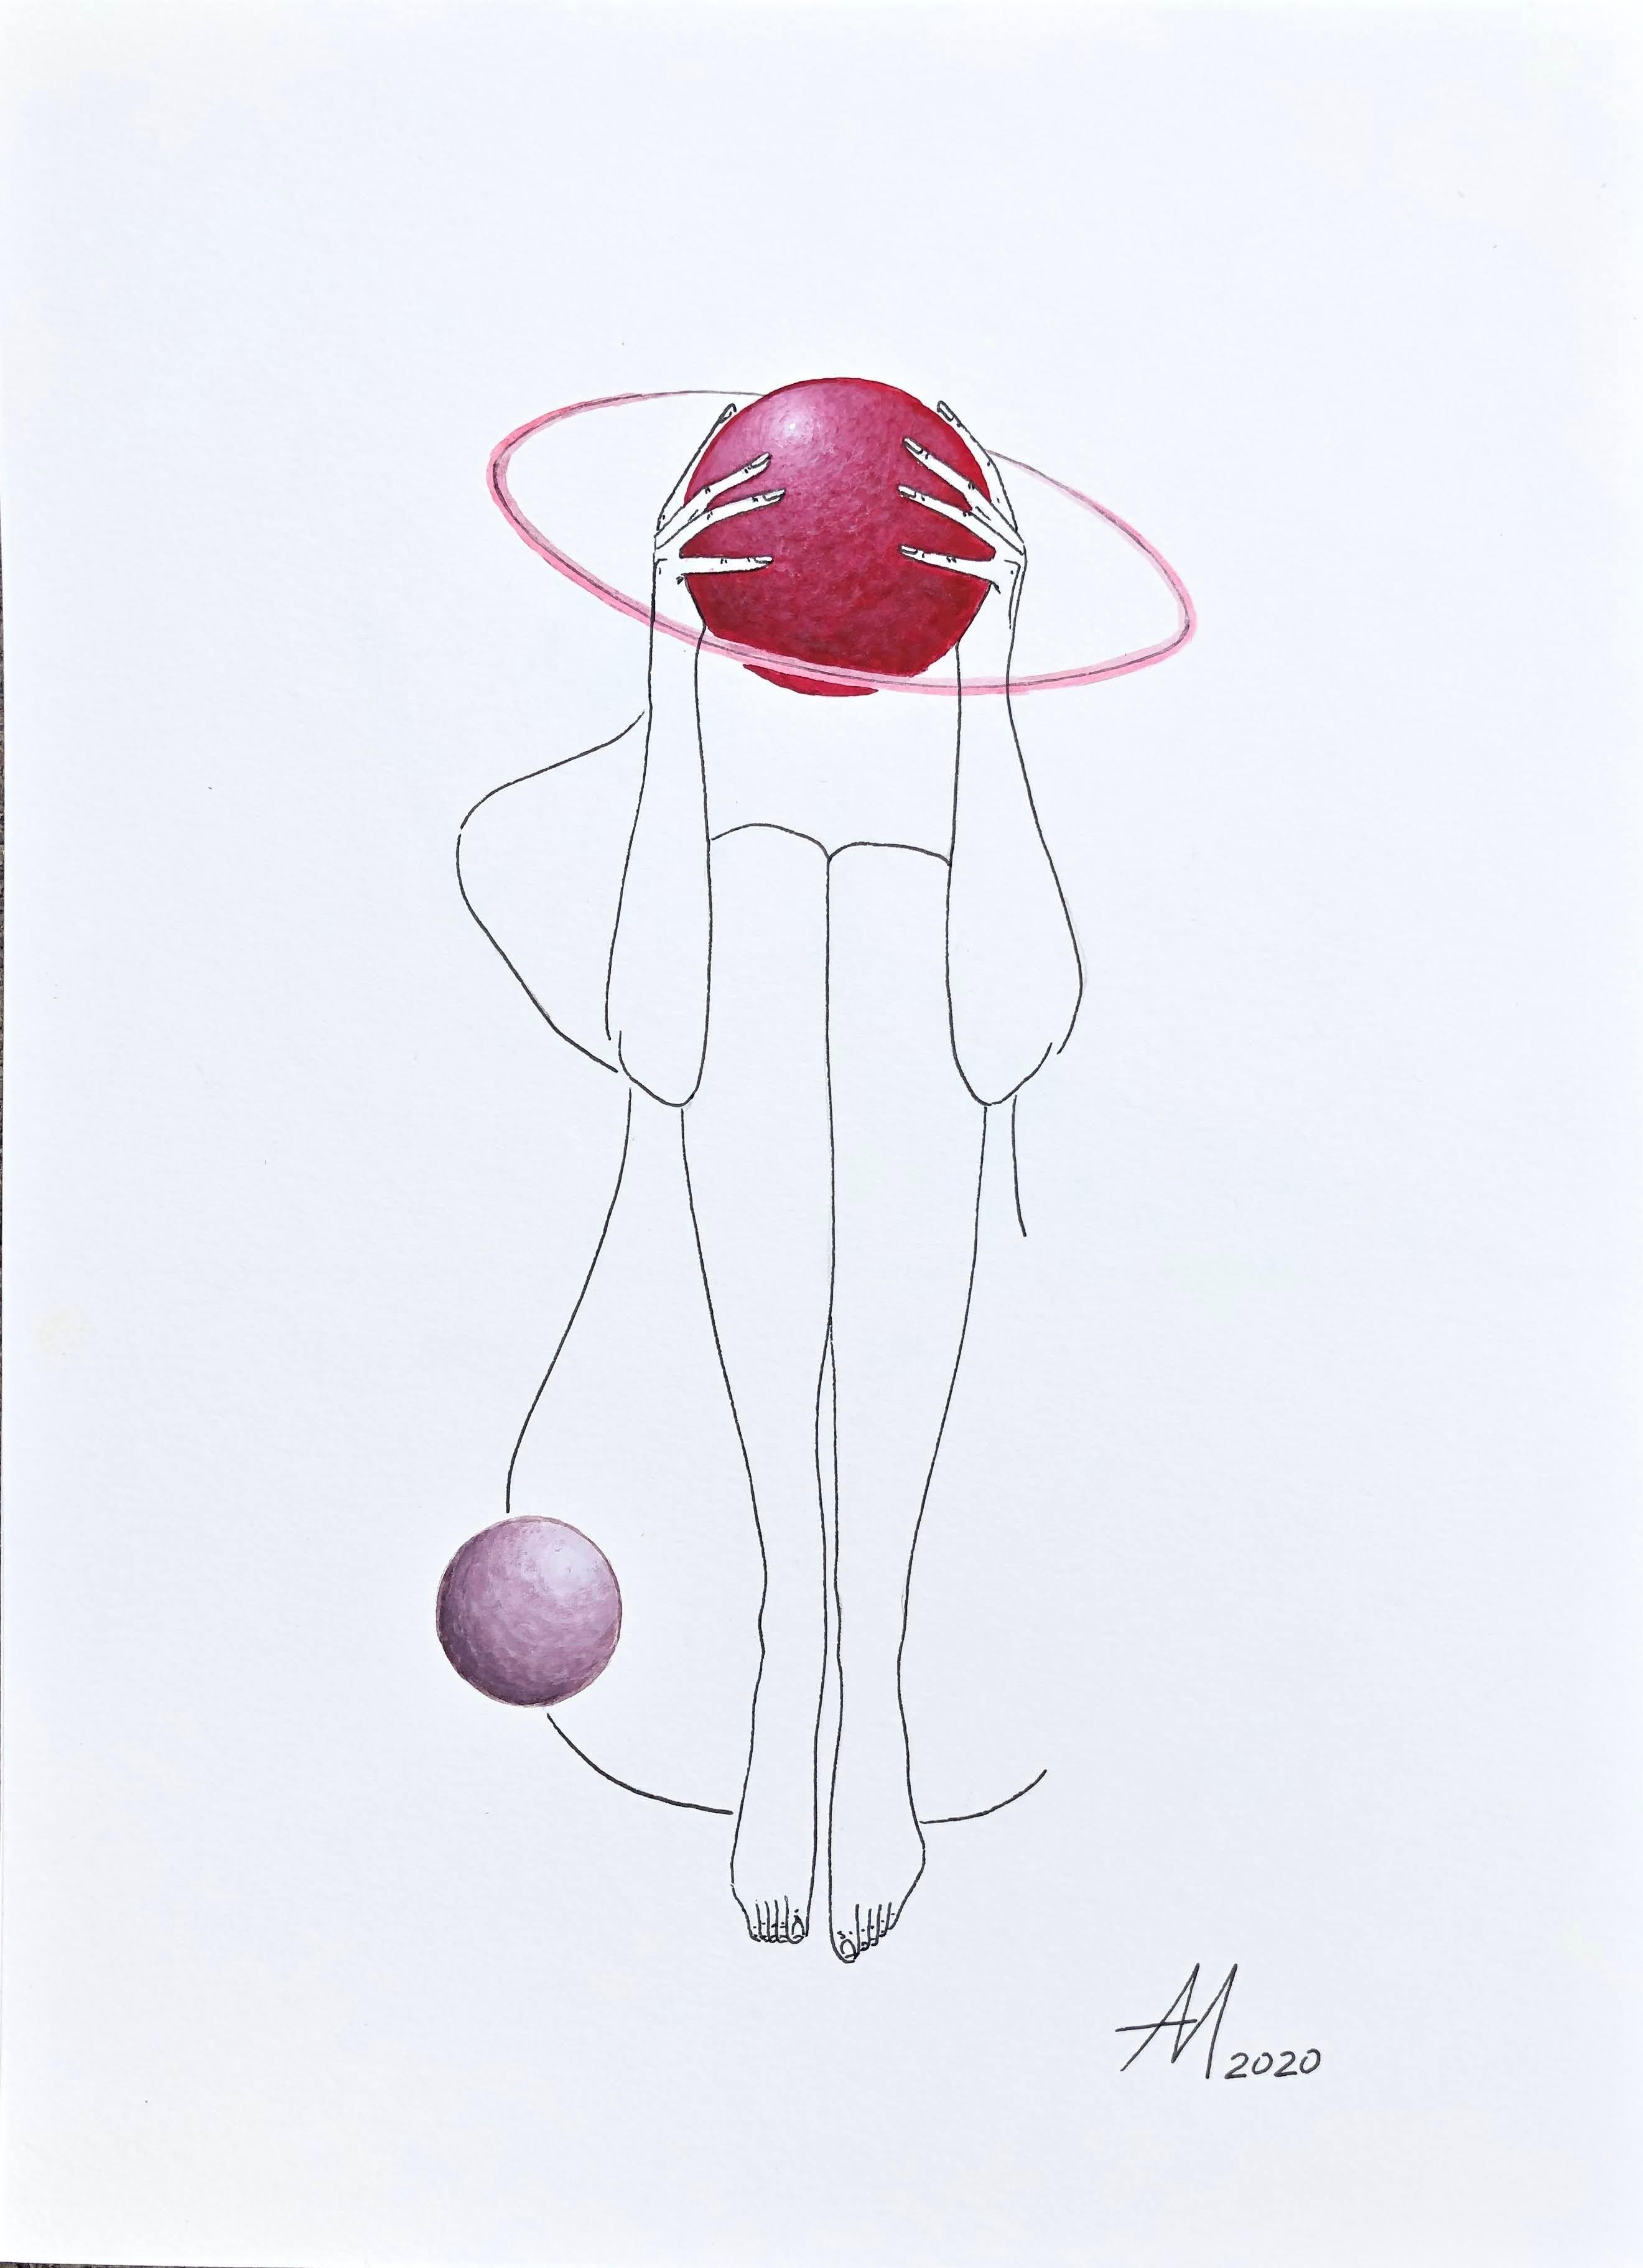 Love and dizziness (planet) - line drawing woman figure with circle